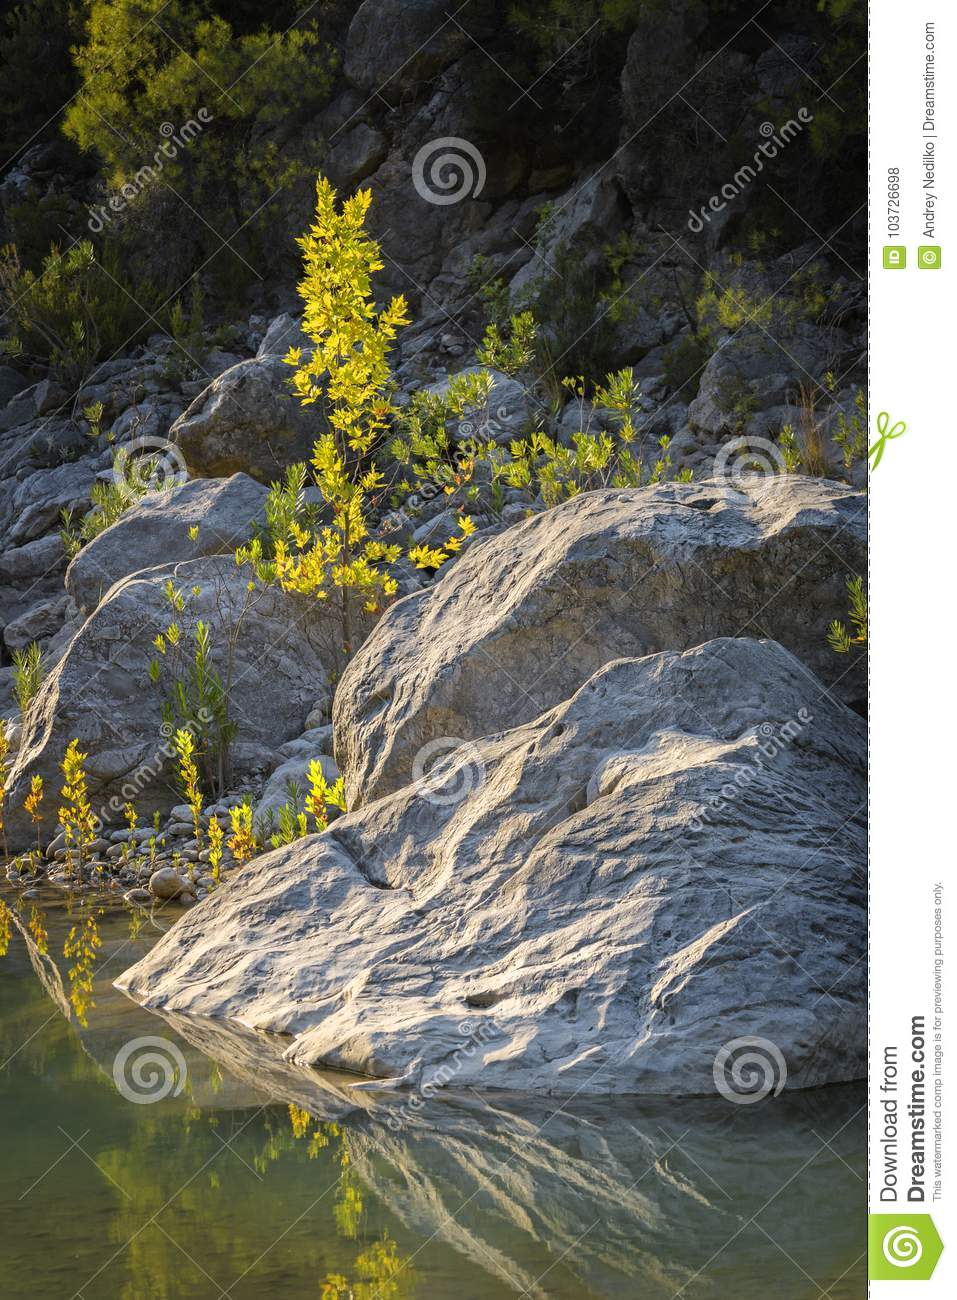 Large stones and a small tree on the river bank.